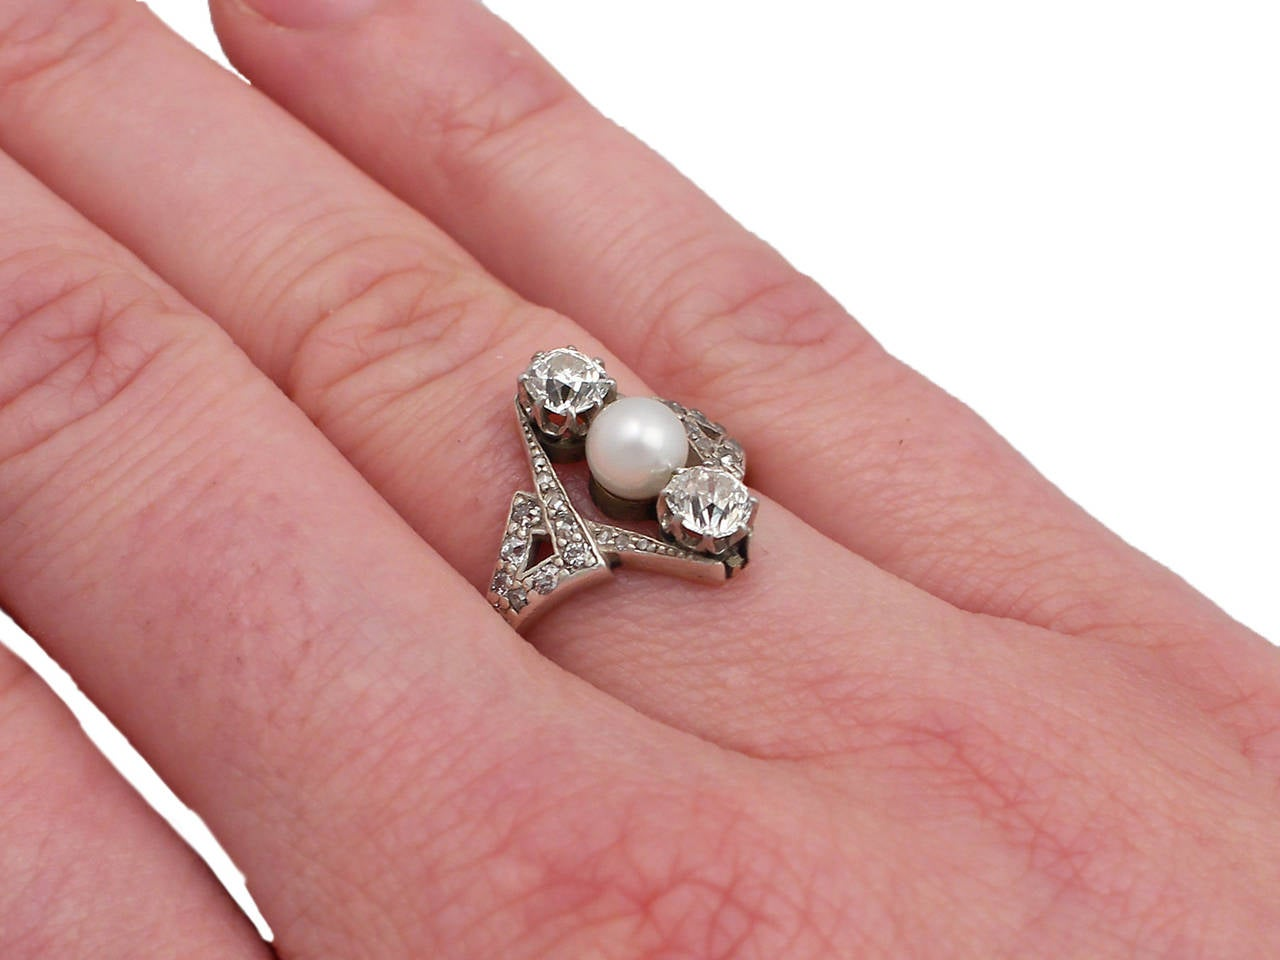 1900s Antique 1.15 Carat Diamond and Pearl Yellow Gold Cocktail Ring For Sale 4